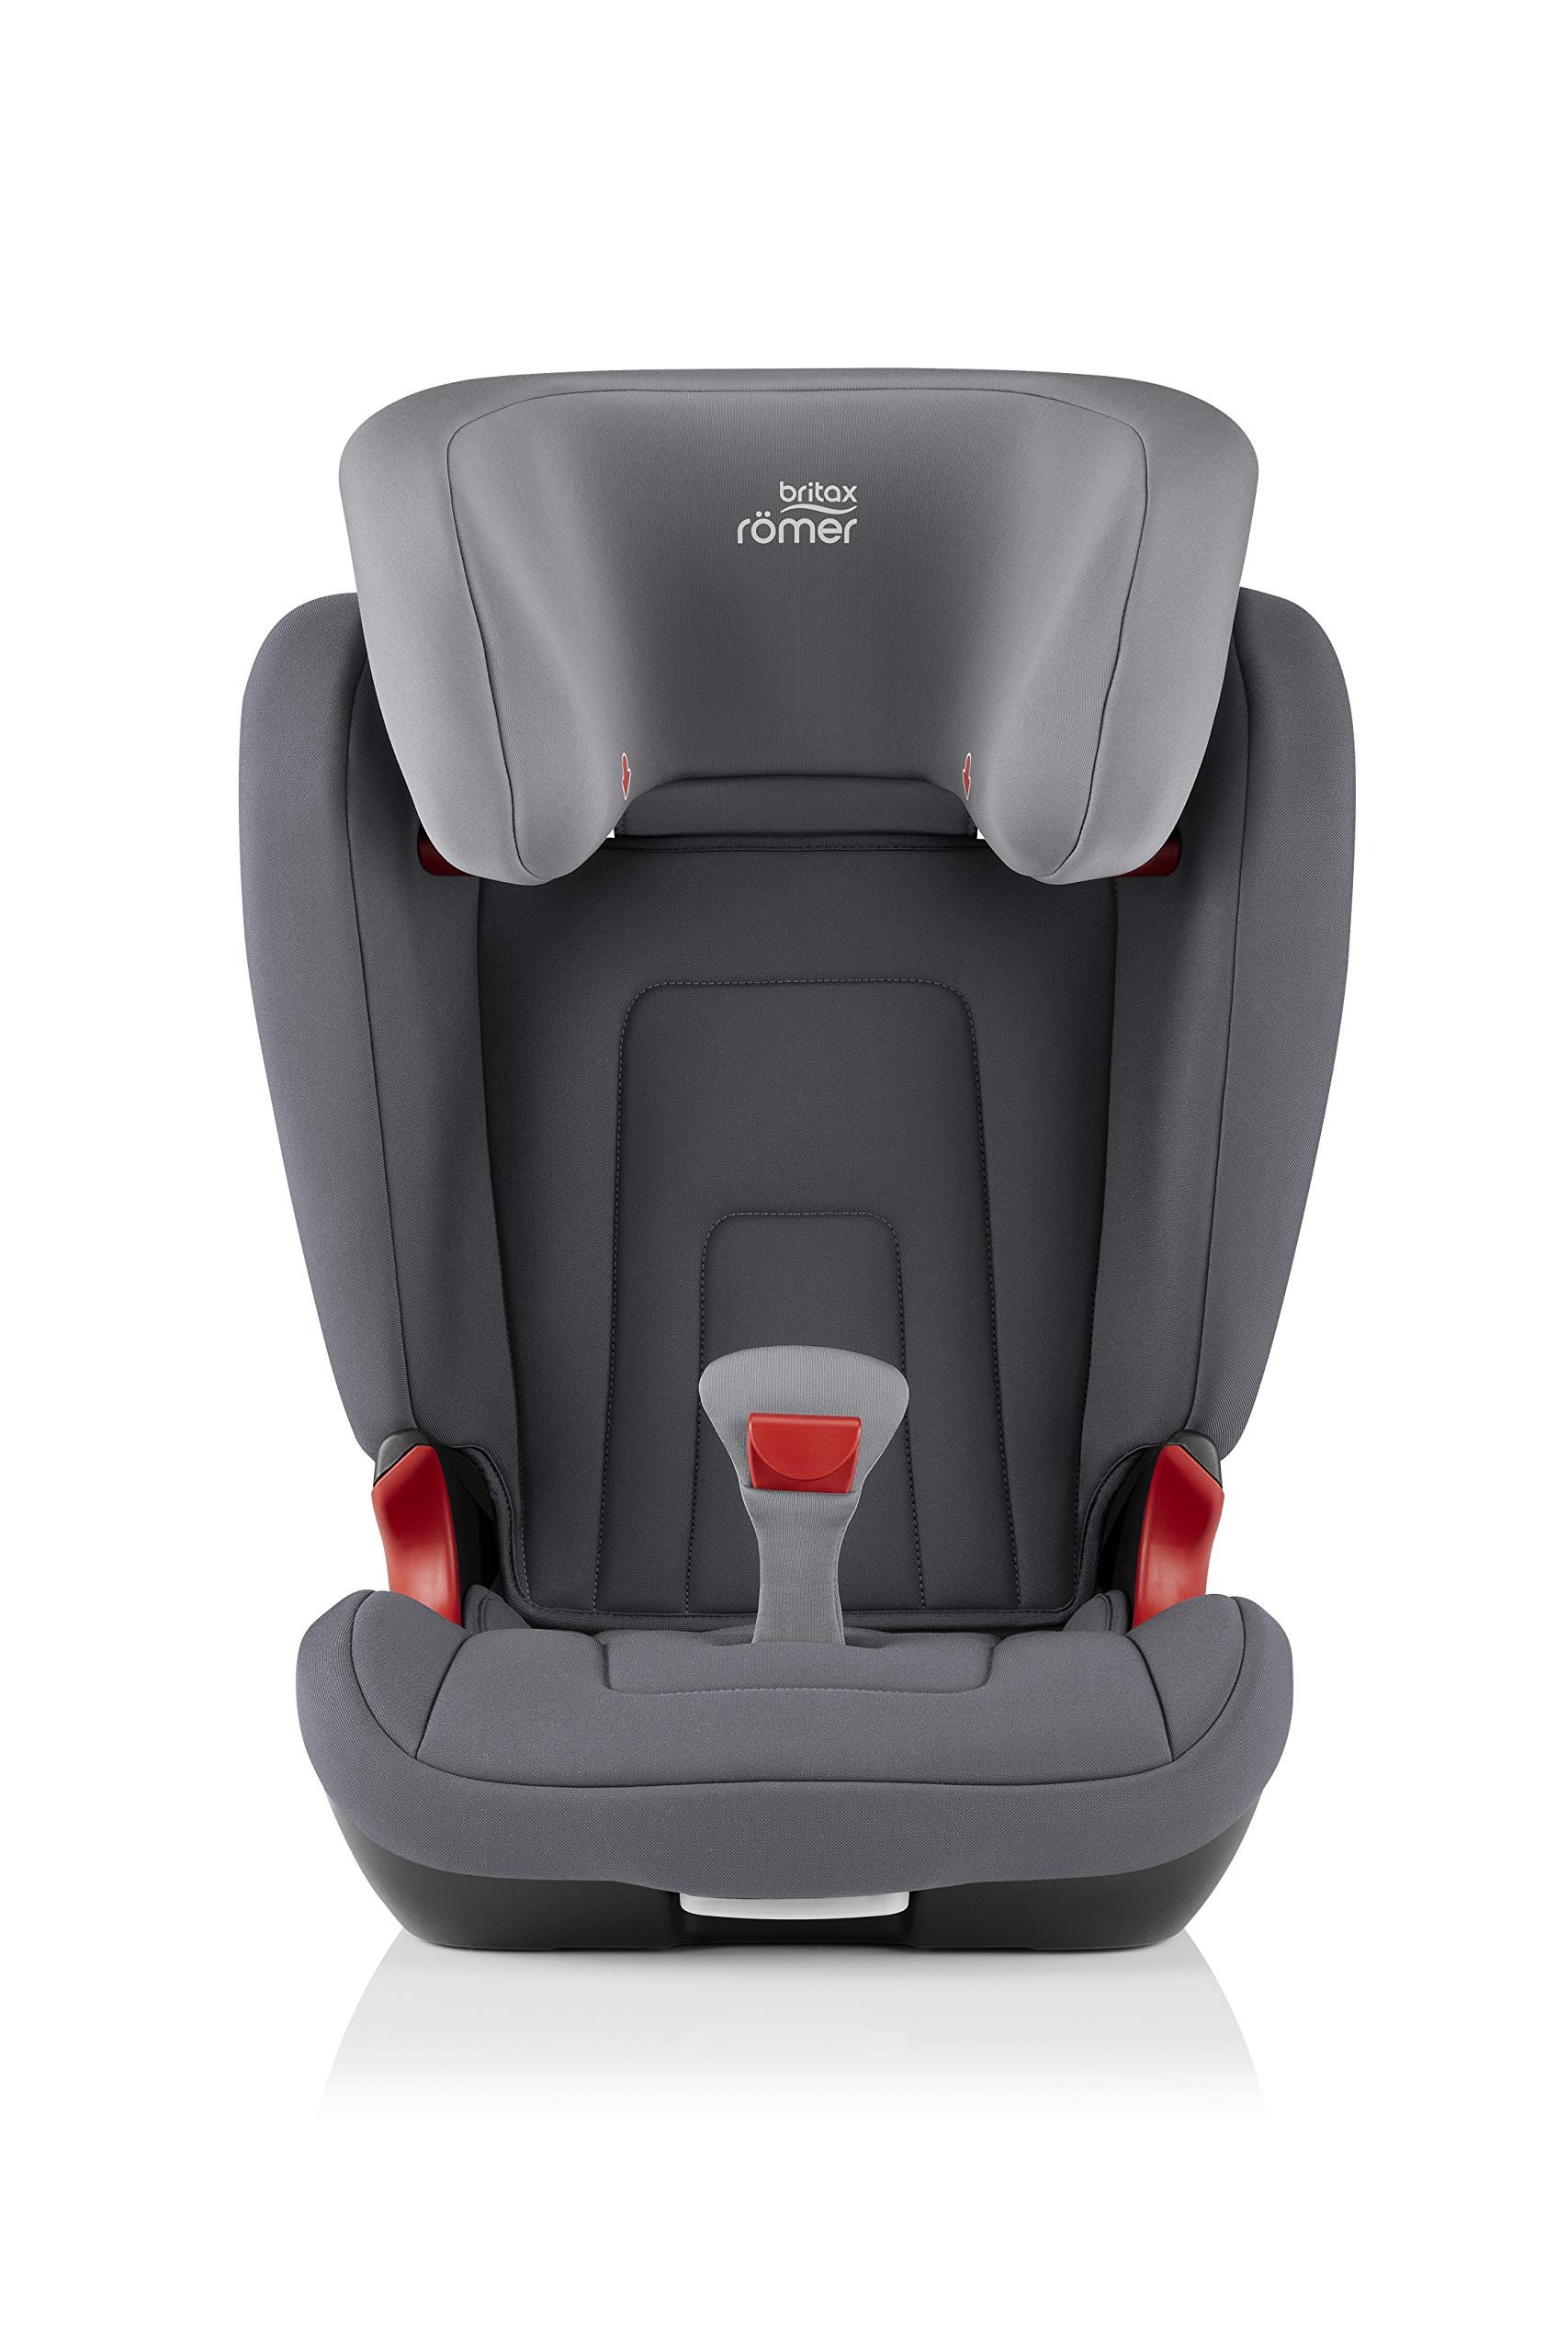 Britax Römer car seat 15-36 kg, KIDFIX 2 R Isofix group 2/3, Storm Grey Britax Römer Secure guard - helps to protect your child's delicate abdominal area by adding an extra - a 4th - contact point to the 3-point seat belt. High back booster - protects your child in 3 ways: provides head to hip protection; belt guides provide correct positioning of the seat belt and the padded headrest provides safety and comfort. Easy adjustable v-shaped backrest - designed to give optimum support to your growing child, the v-shaped backrest provides more space for their back and shoulders. 2